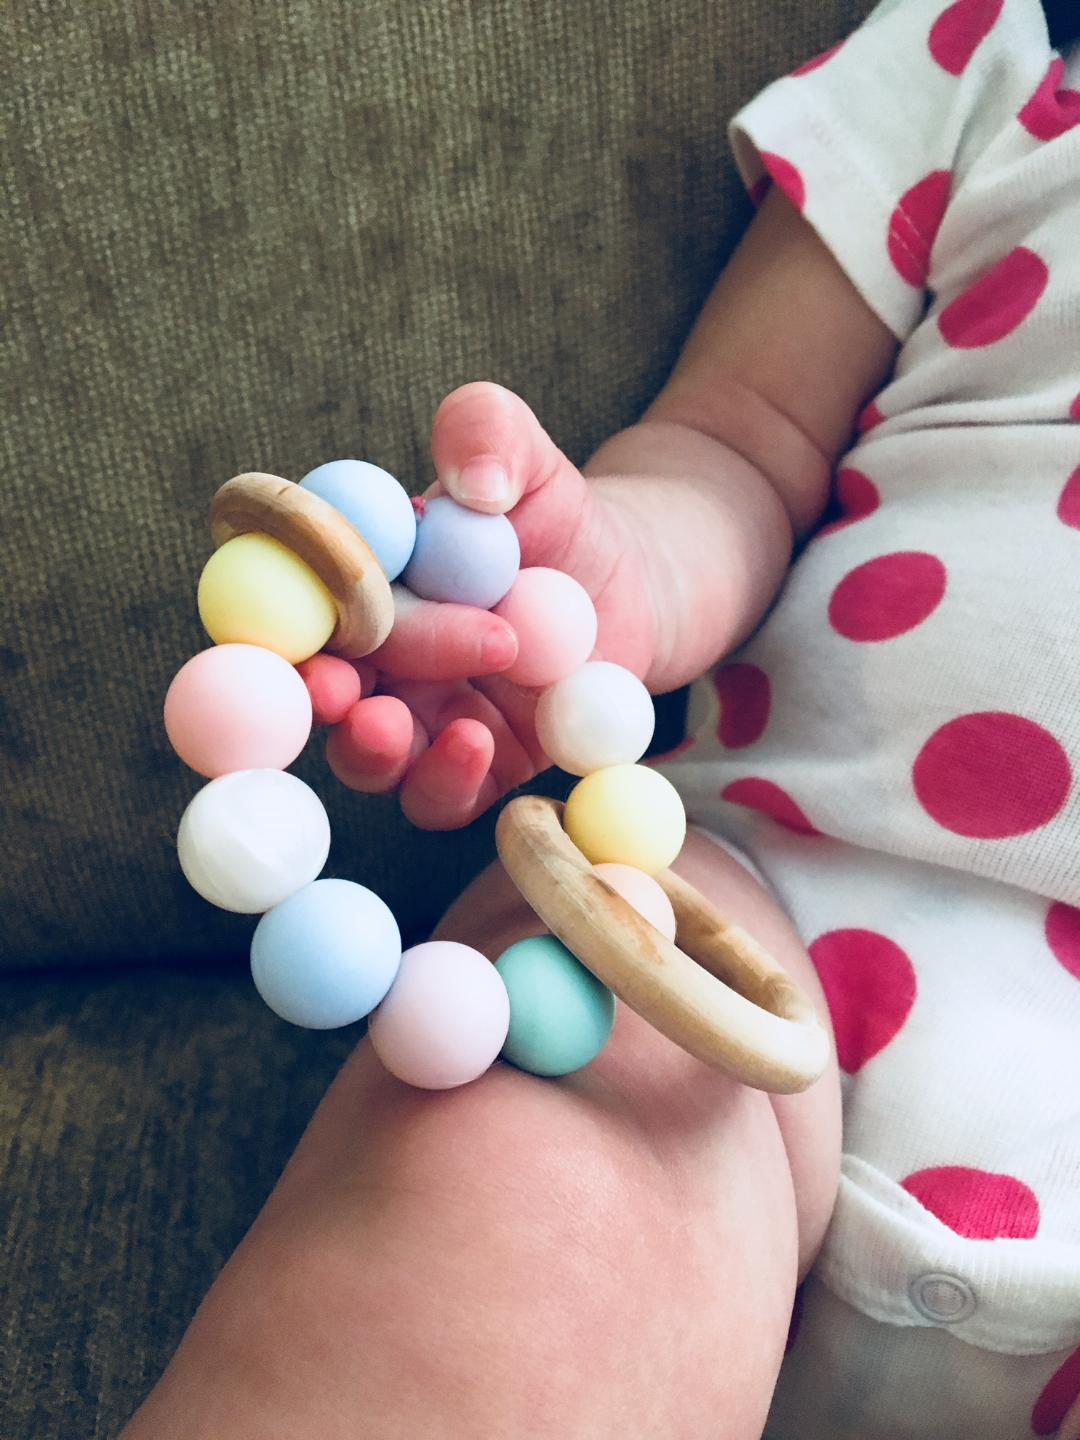 infant teethers-teething toys-baby products